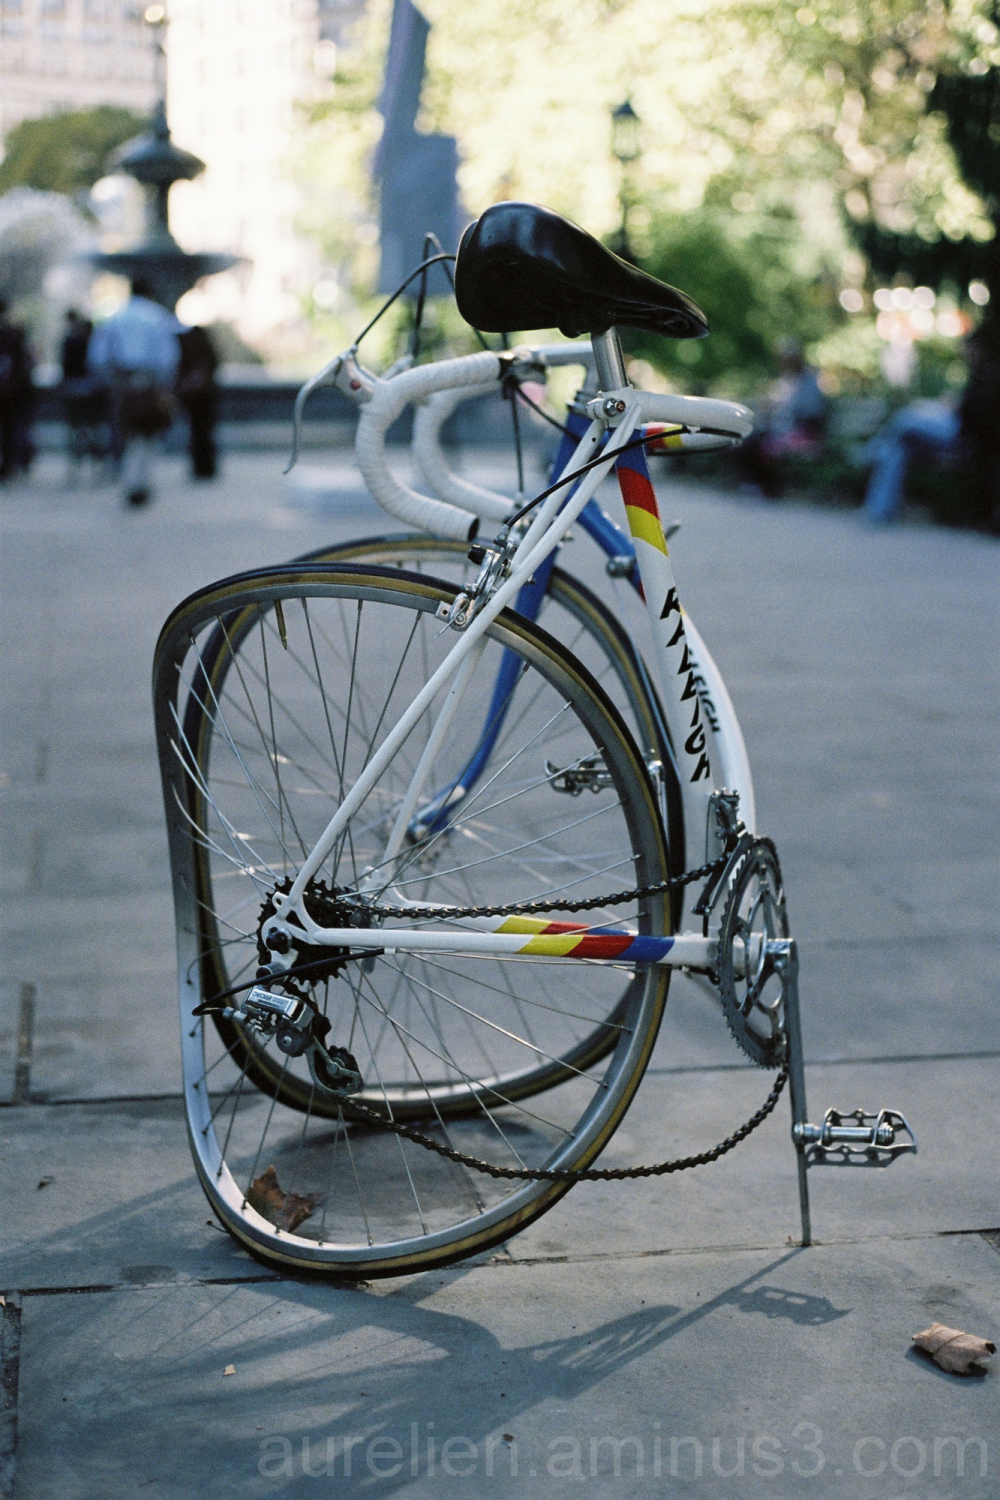 Sculpture of a Bike, New York